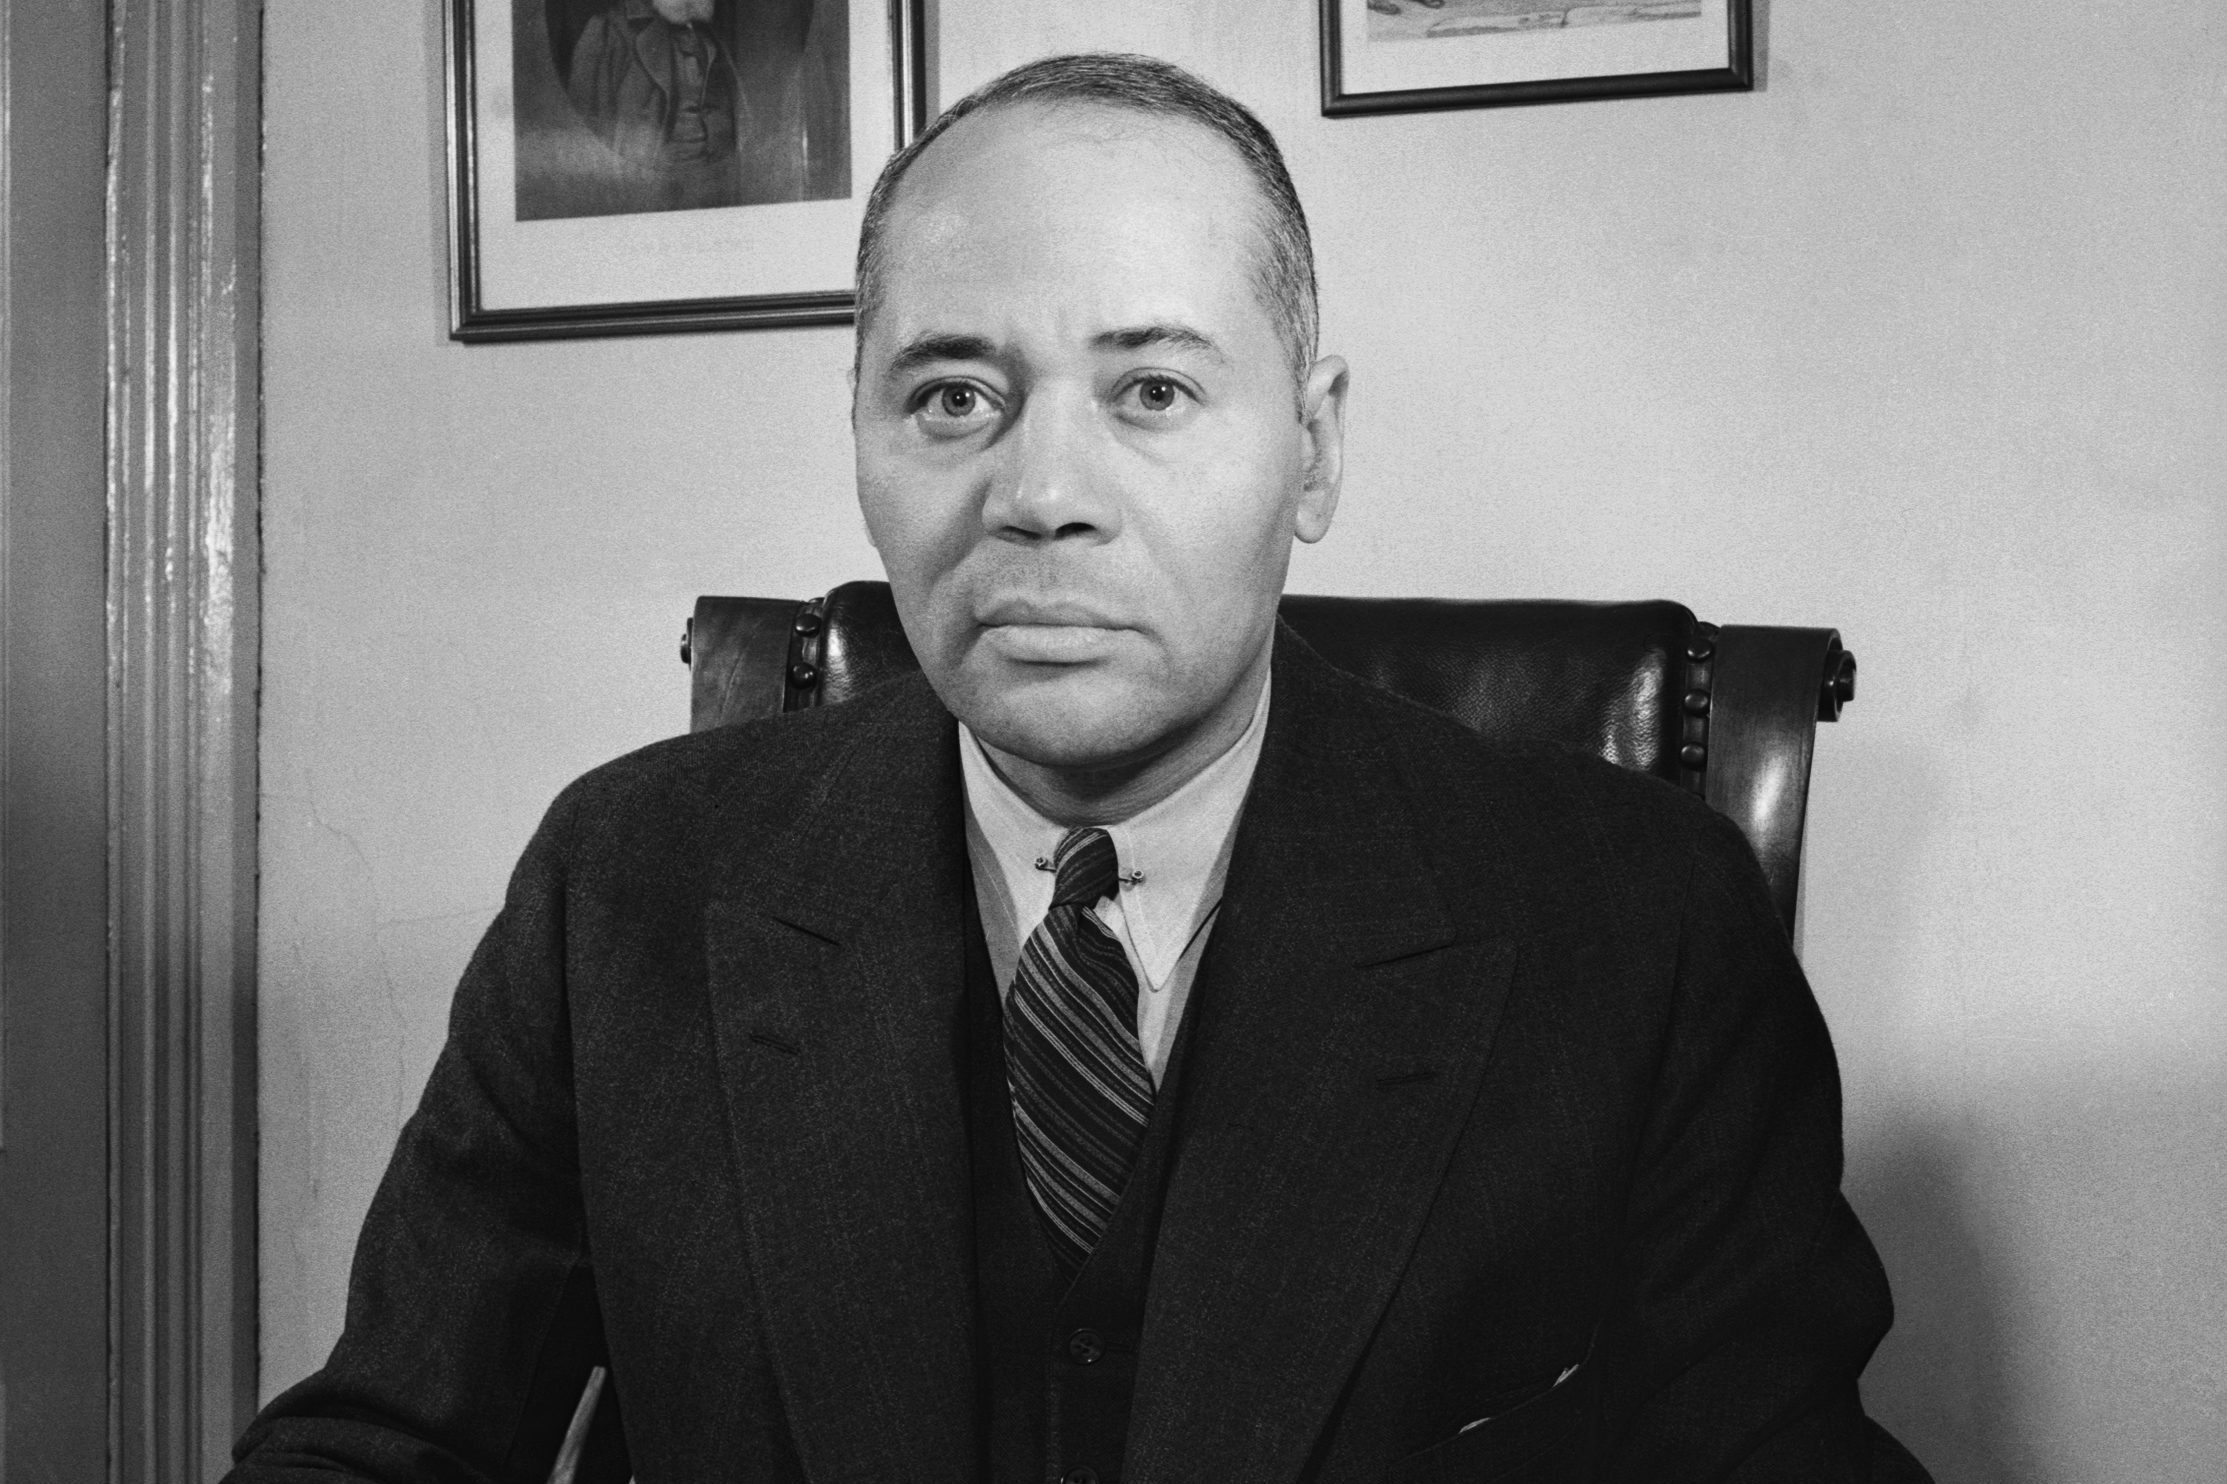 Chief Counsel Charles H. Houston